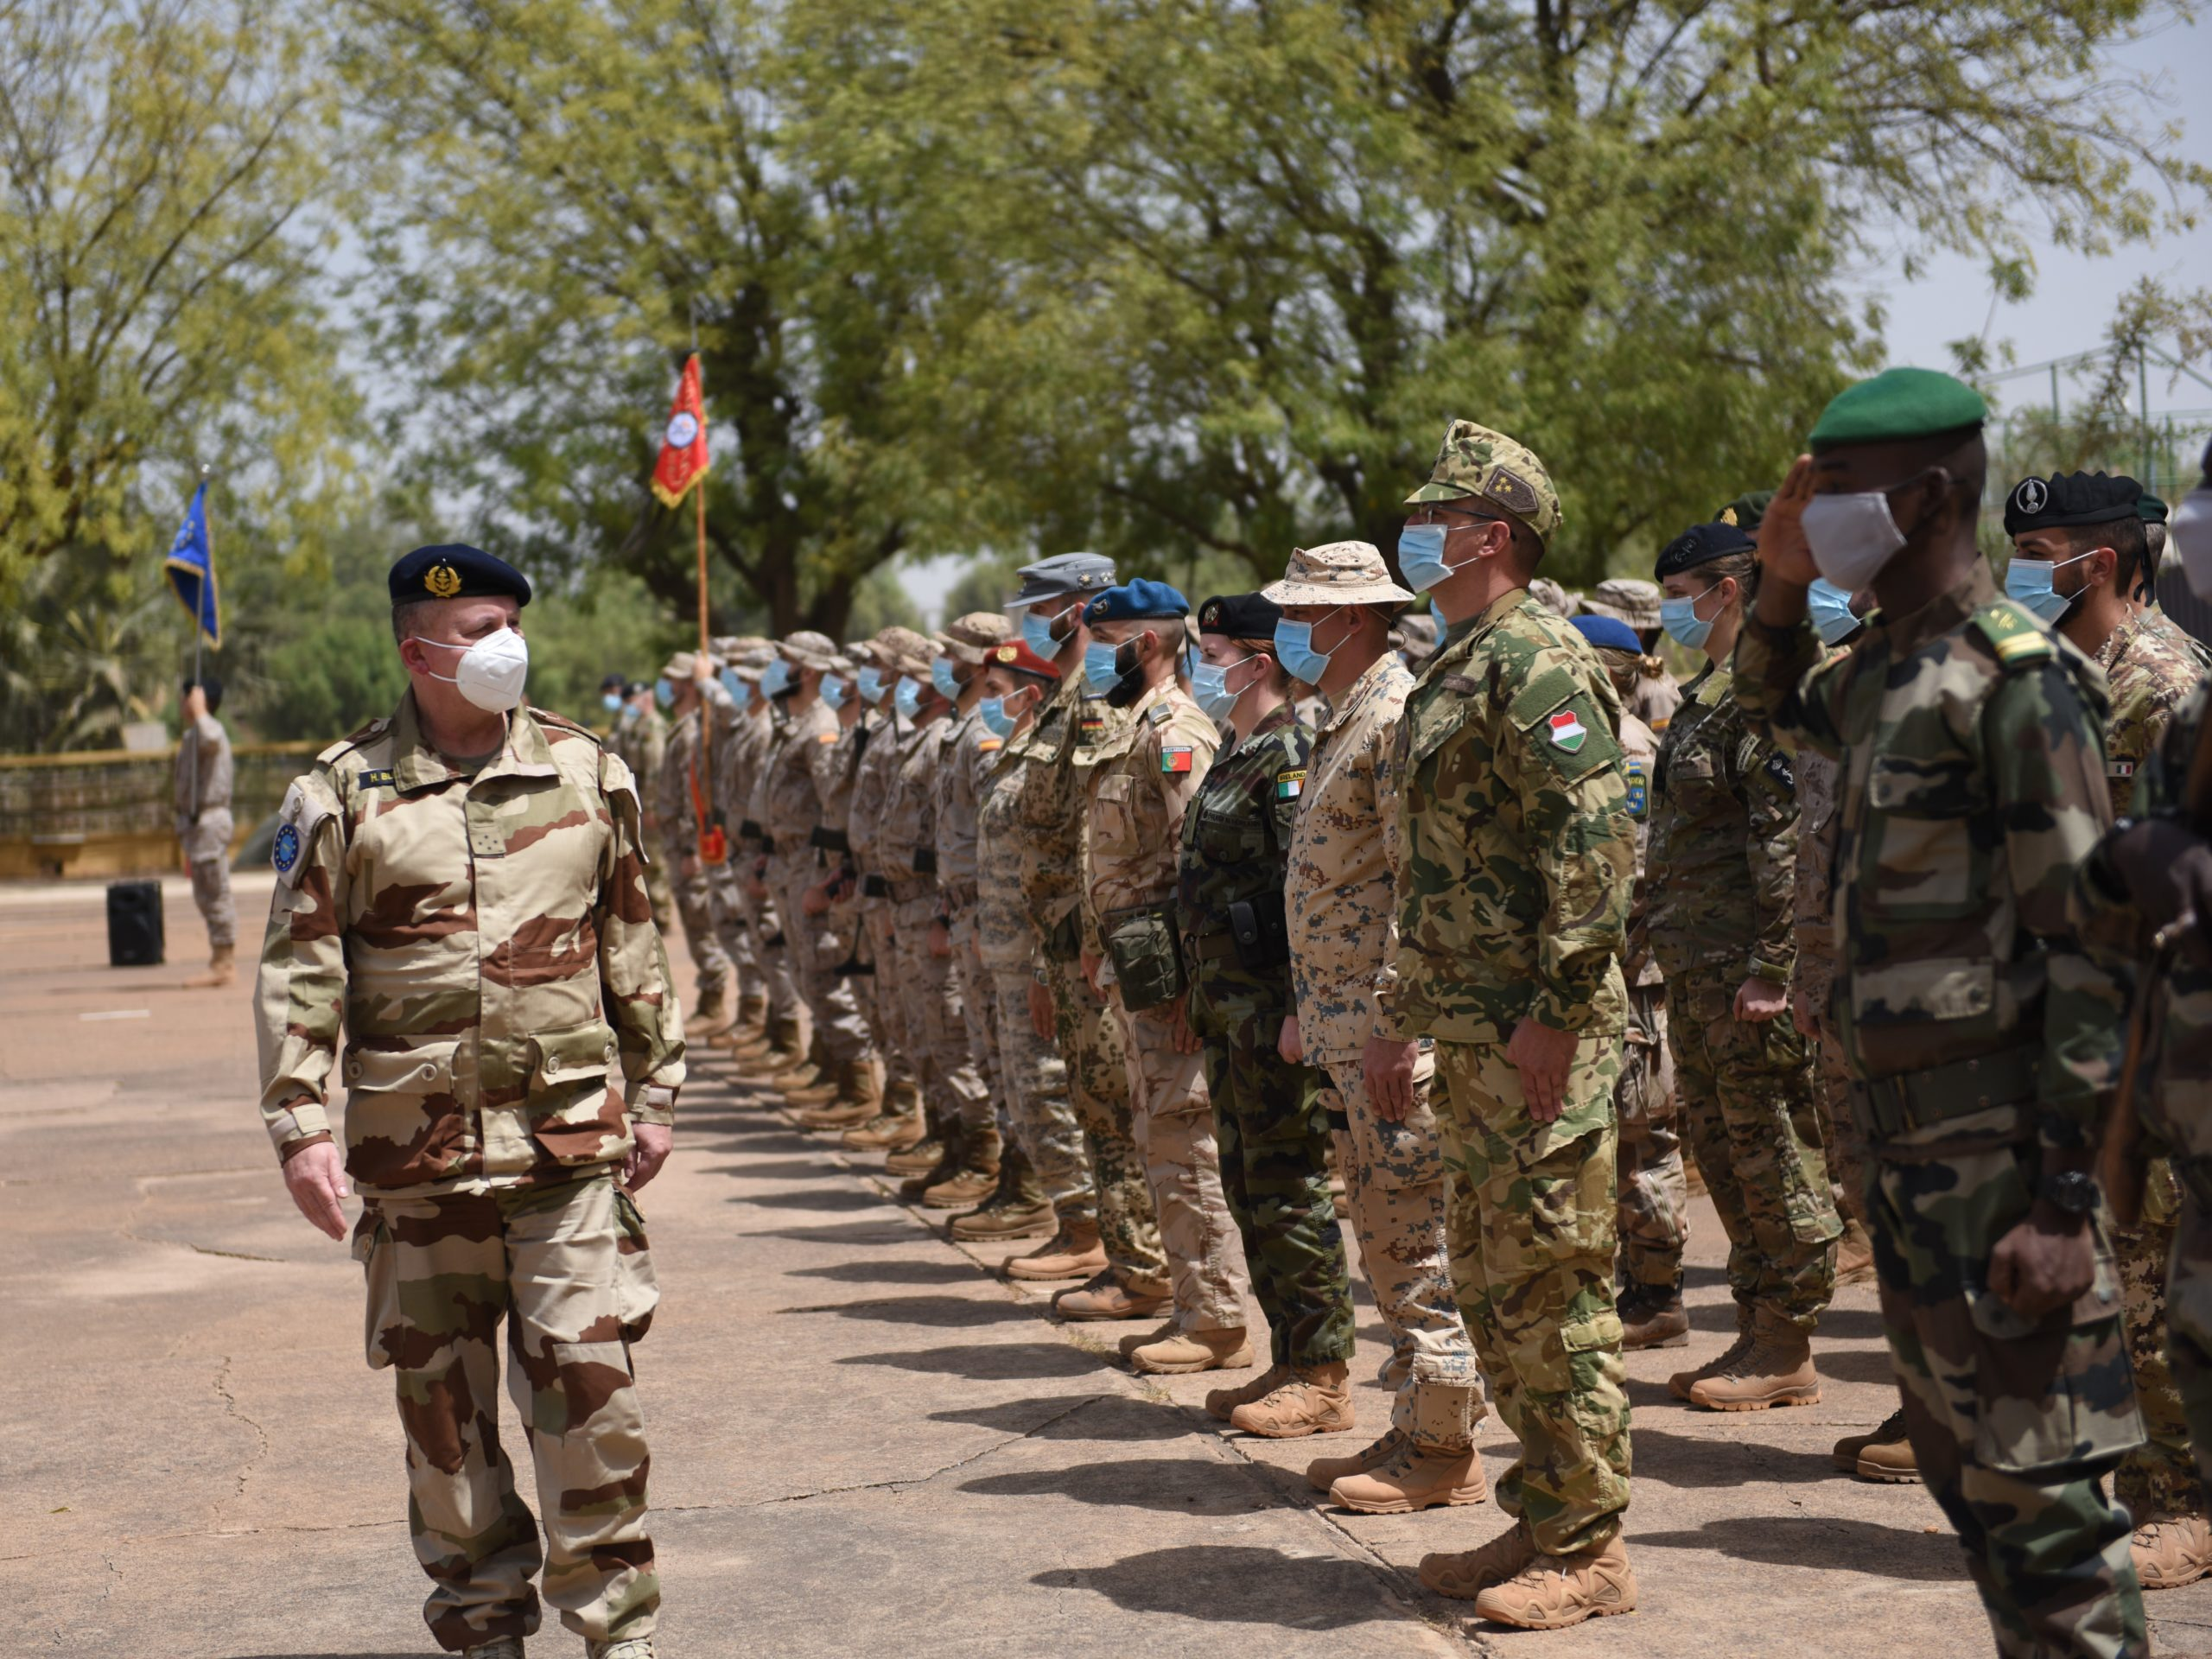 DIRECTOR GENERAL OF THE EUROPEAN UNION MILITARY STAFF VISITS MALI